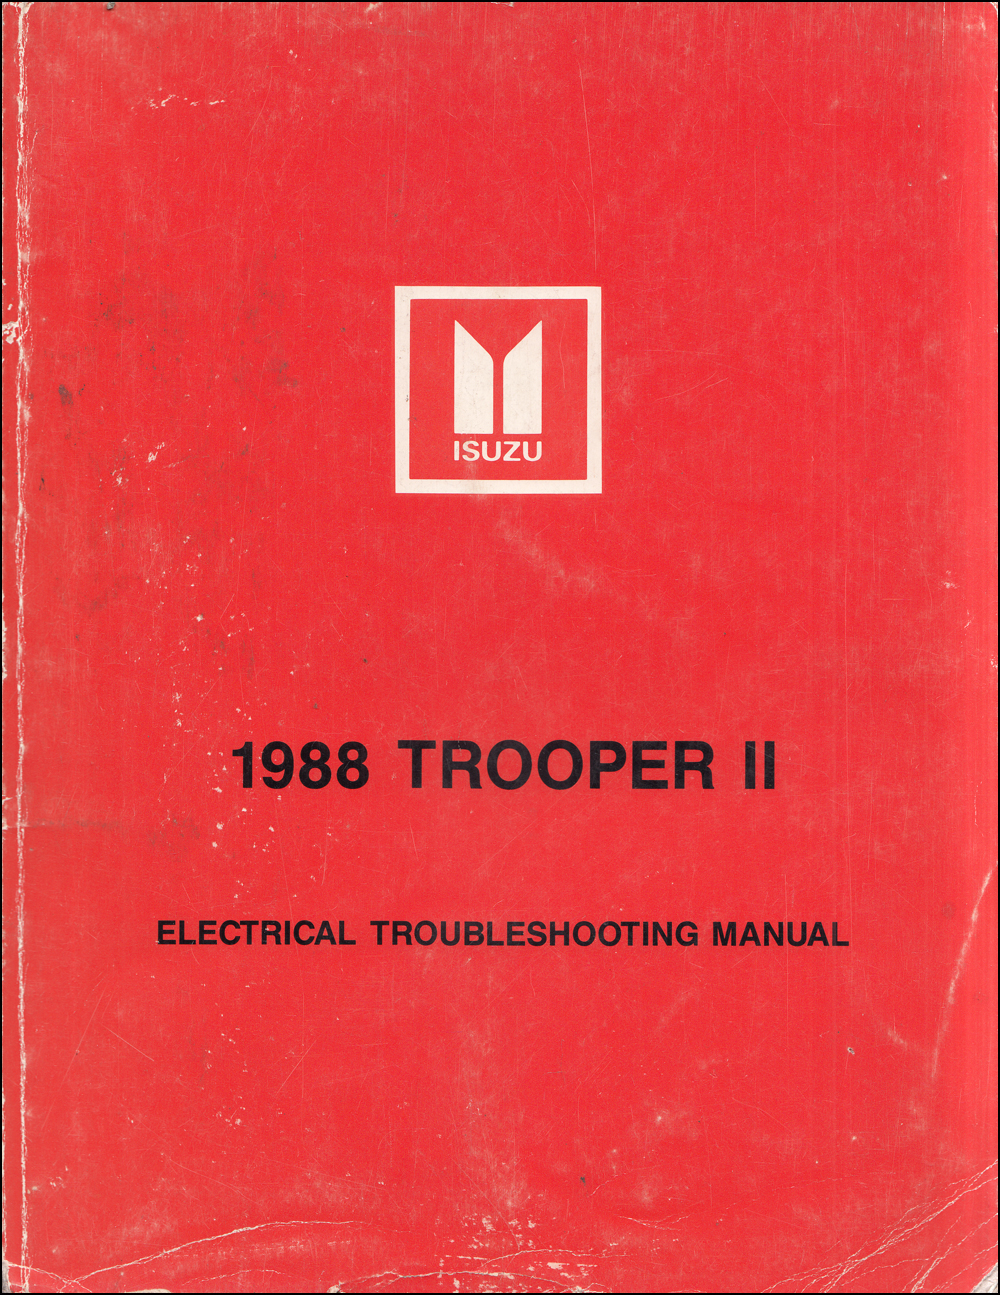 hight resolution of 1988 isuzu trooper ii electrical troubleshooting manual original